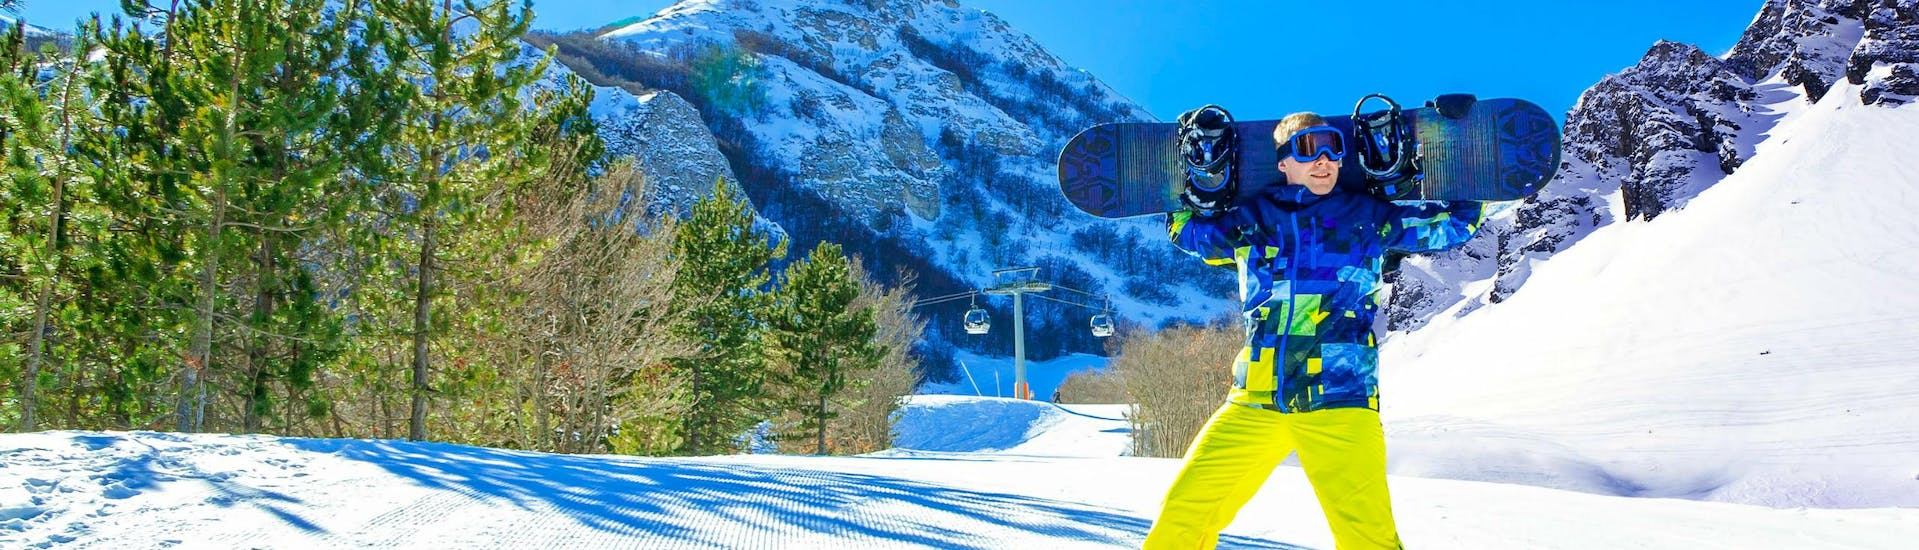 A snowboarder is posing for the camera on a sunny ski slope in the Italian ski resort of Campo Felice, where visitors can choose from a wide range of ski lessons offered by the local ski schools.